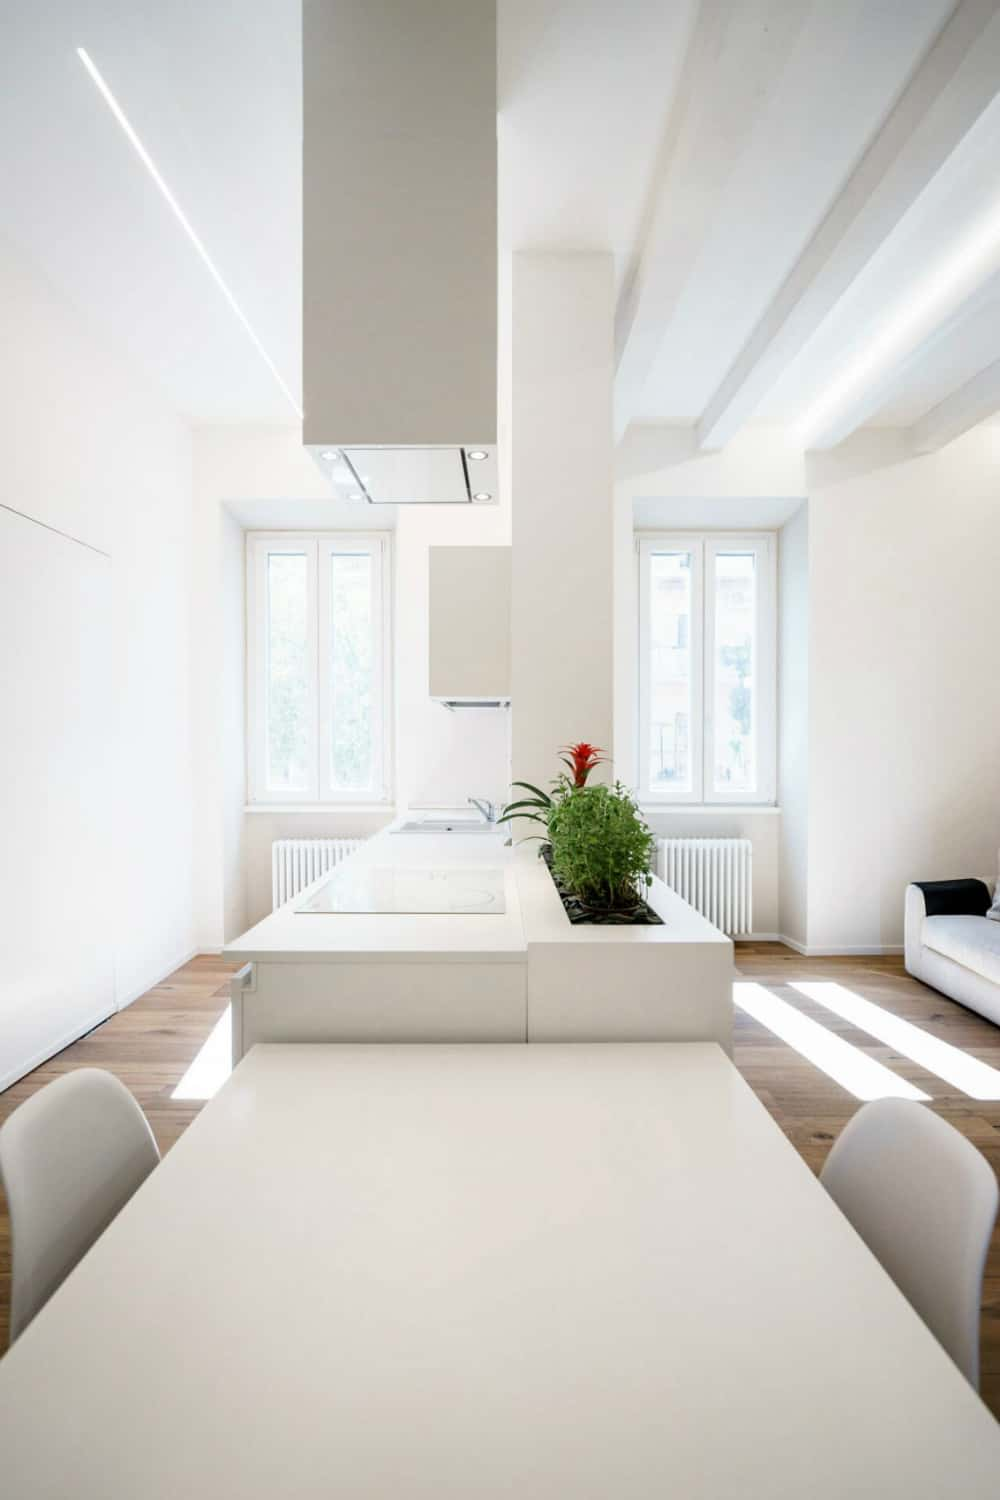 Kitchen worktops continue with a white dining table